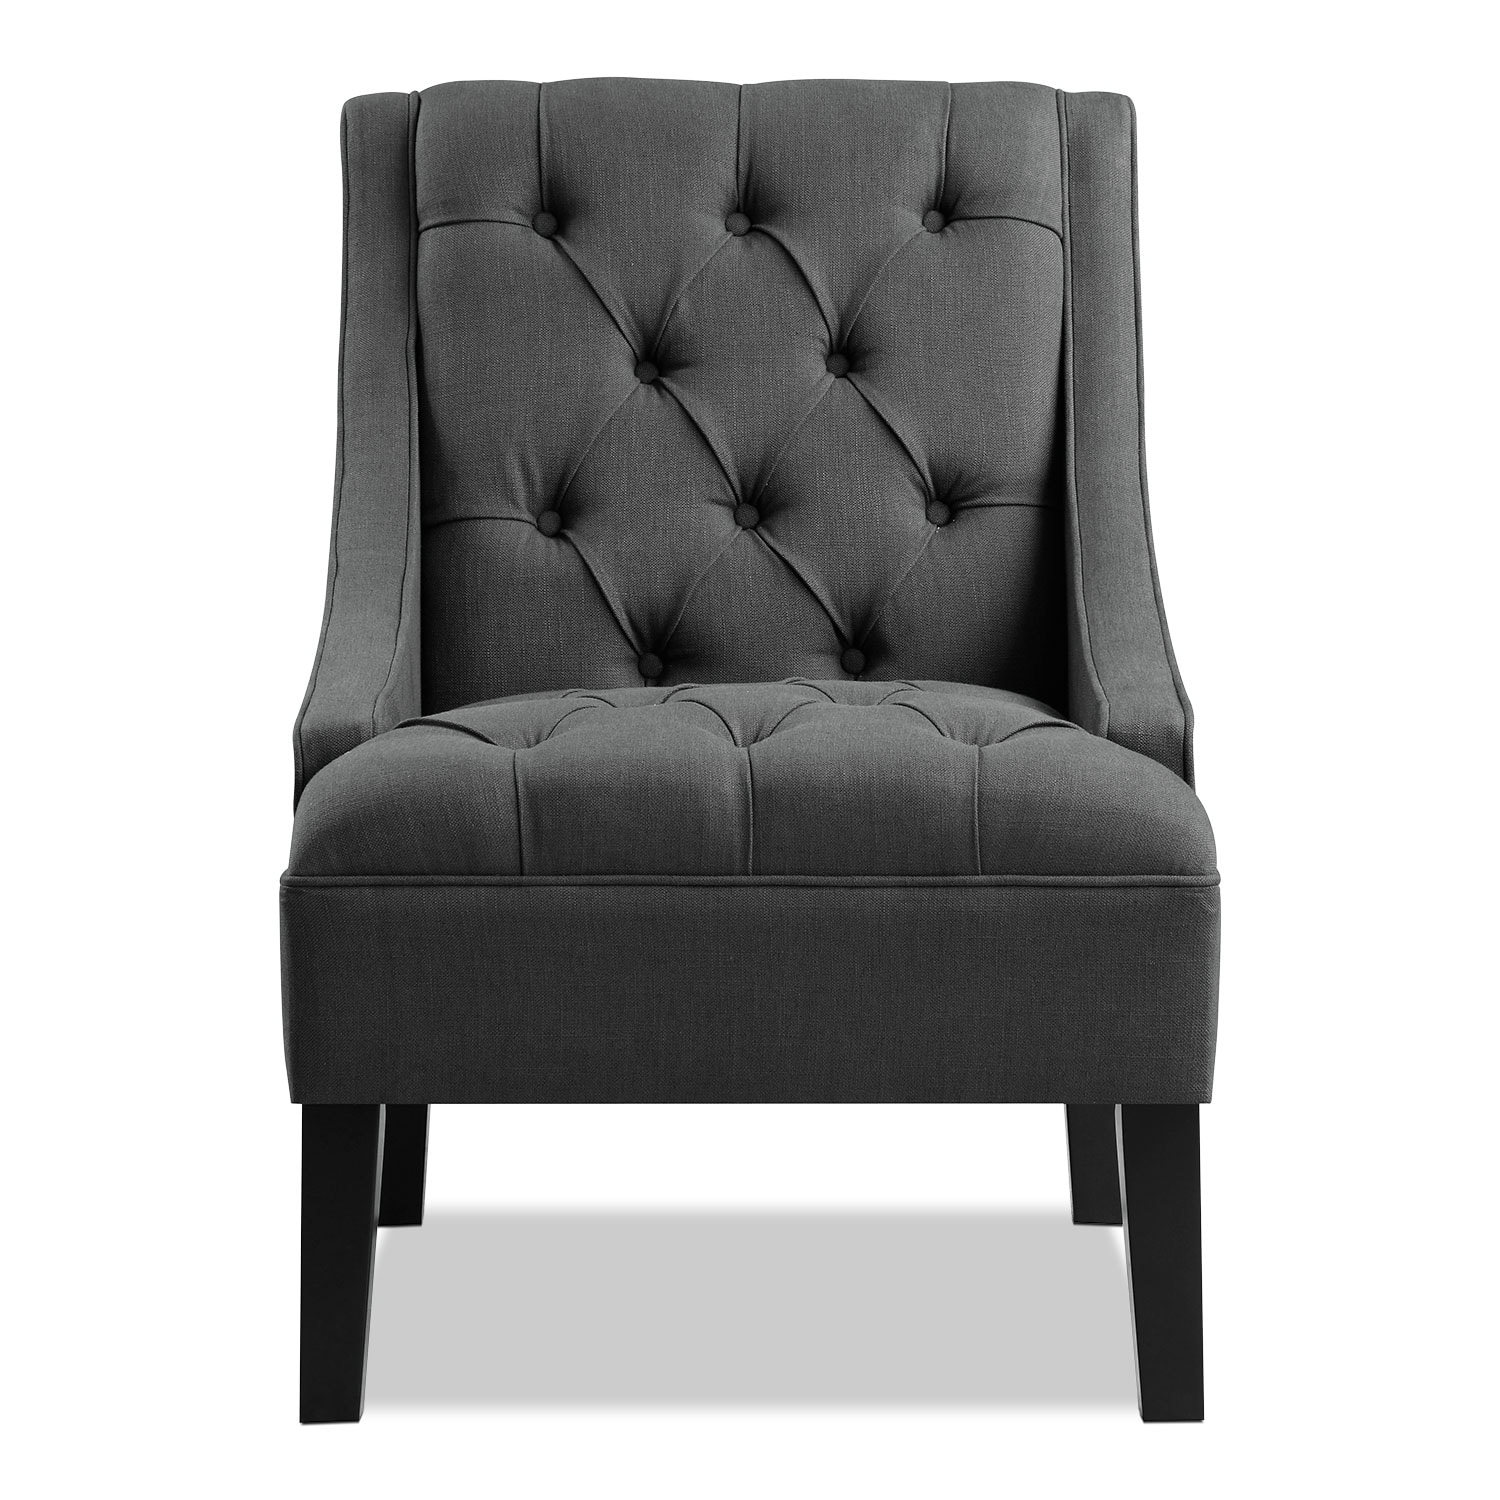 Greylin accent chair gray value city furniture